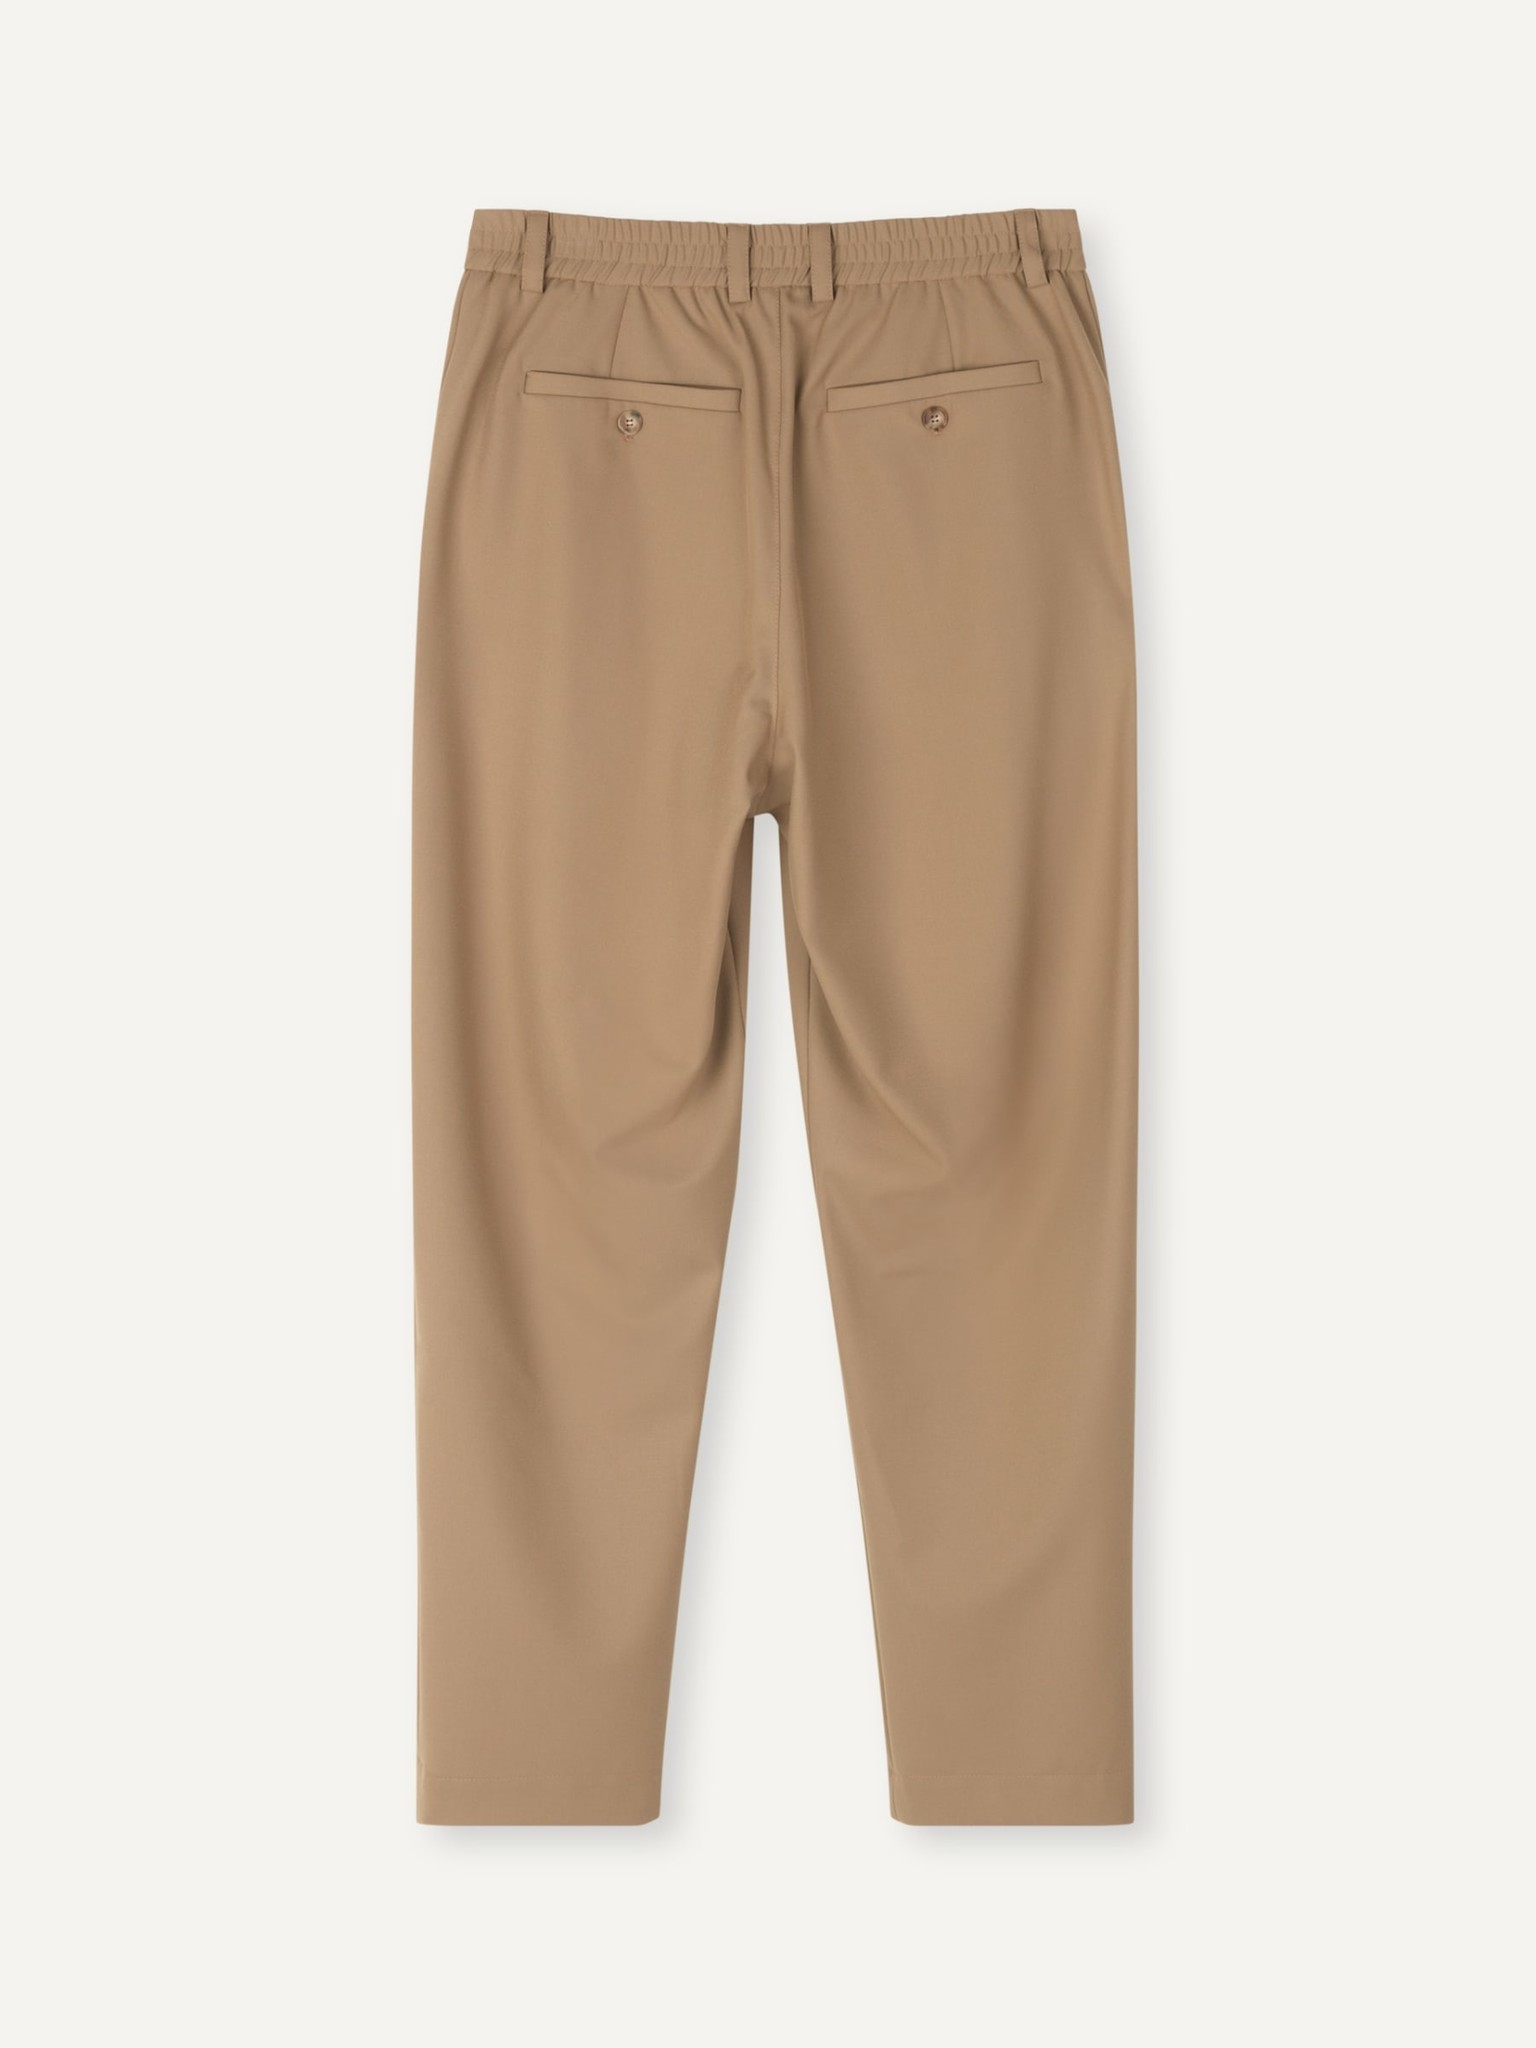 Smoke Loose Fit Pants Khaki-3